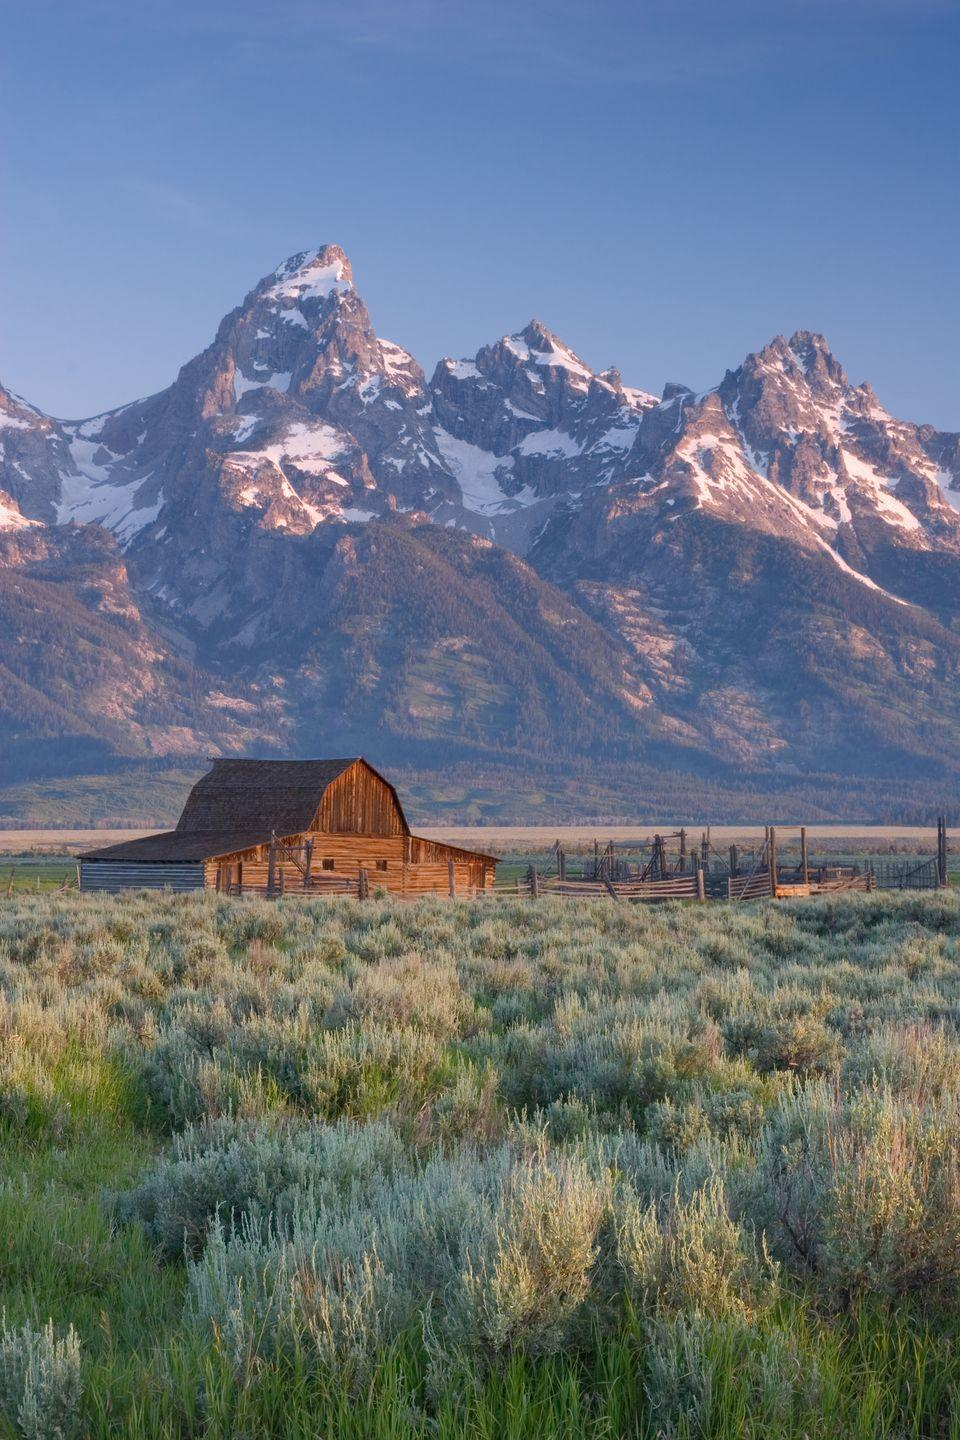 "<p><strong>Where: </strong>Grand Teton, Wyoming</p><p><strong>Why We Love It: </strong>This mountain is so beautiful that it had an entire national park named after it.</p><p><strong>RELATED:</strong> <a href=""https://www.countryliving.com/life/travel/g4206/americas-best-small-mountain-towns/"" rel=""nofollow noopener"" target=""_blank"" data-ylk=""slk:Small Mountain Towns Perfect for a Summer Vacation"" class=""link rapid-noclick-resp"">Small Mountain Towns Perfect for a Summer Vacation</a></p>"